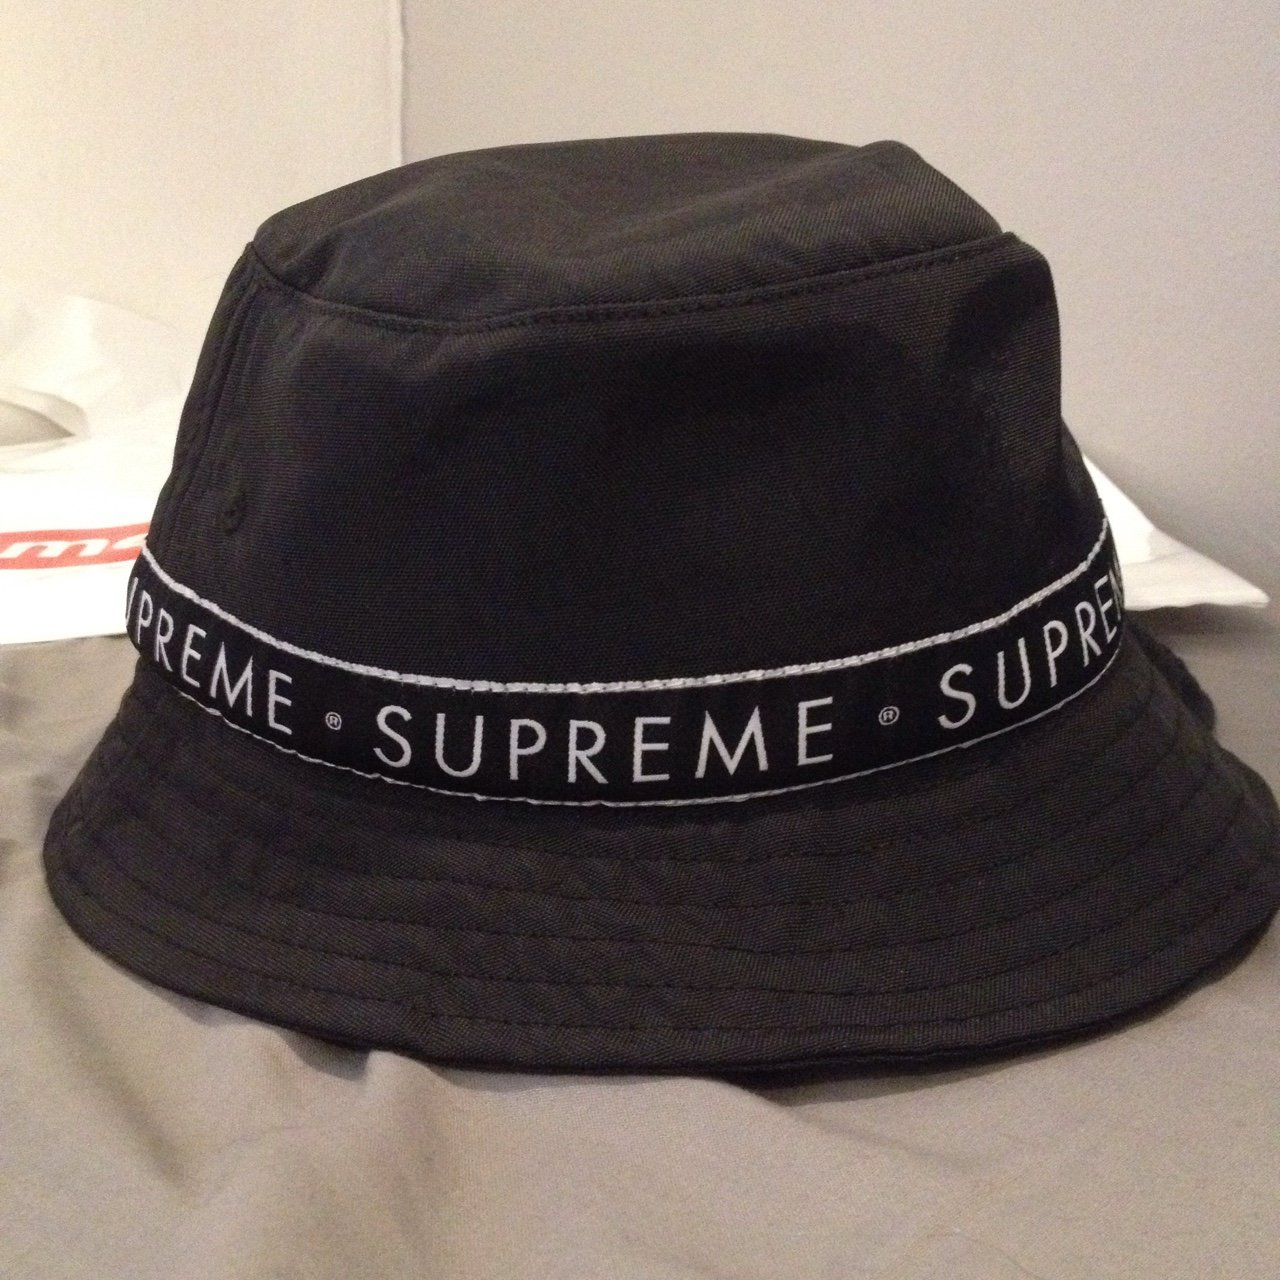 Supreme bucket hat brand new never worn ignore - bape louis - Depop 8849028a25d